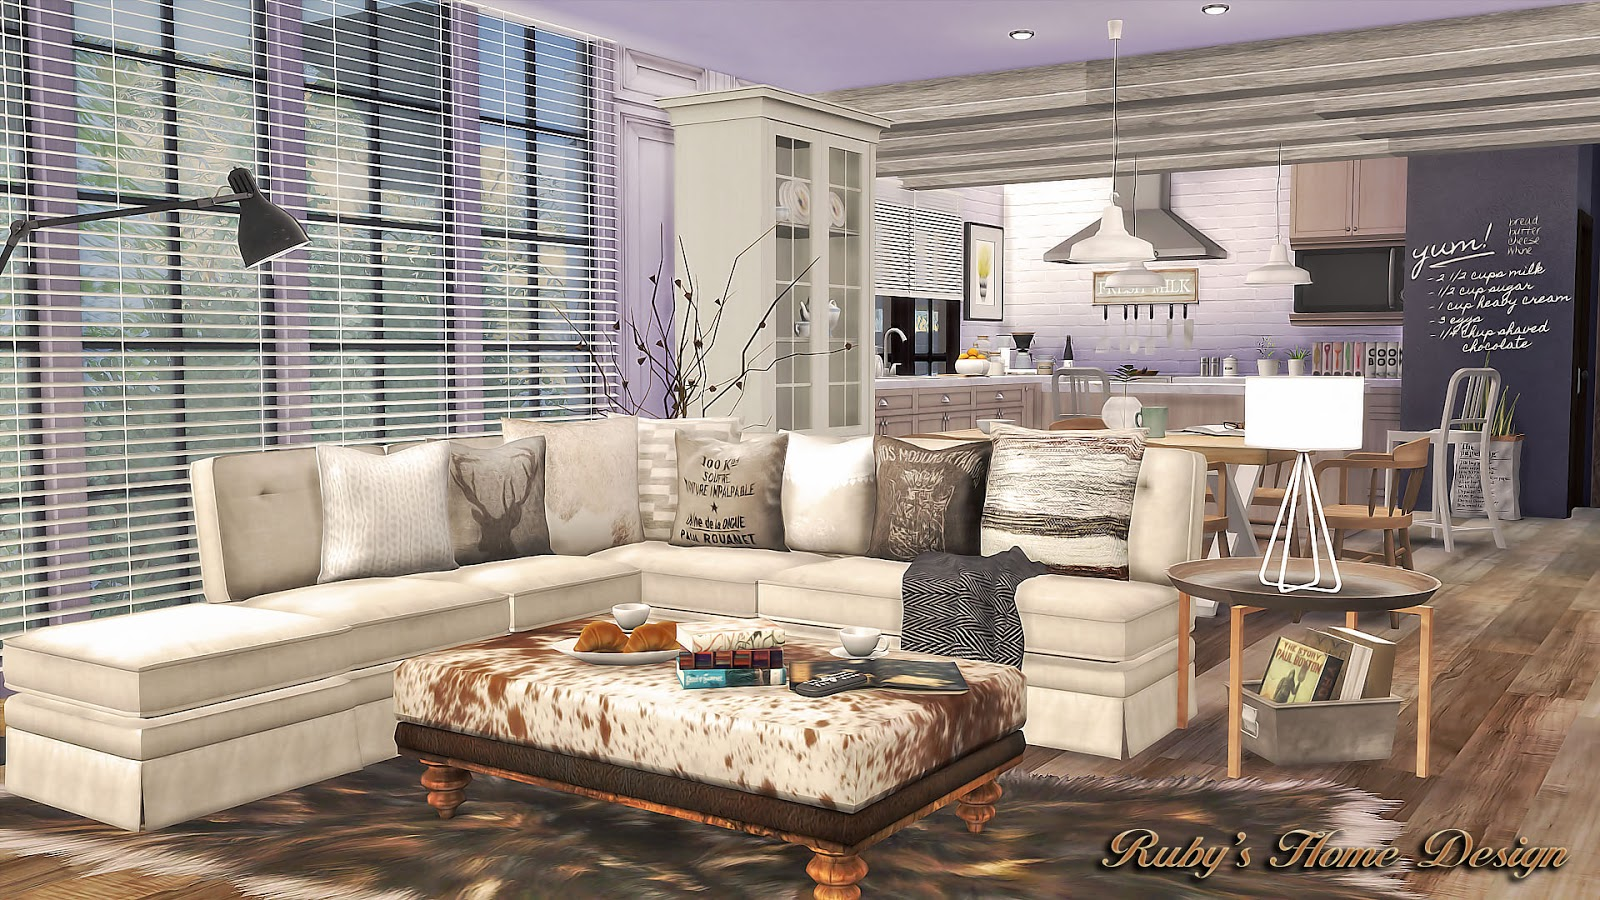 My Sims 4 Blog: Neutral Chic House By Ruby Red